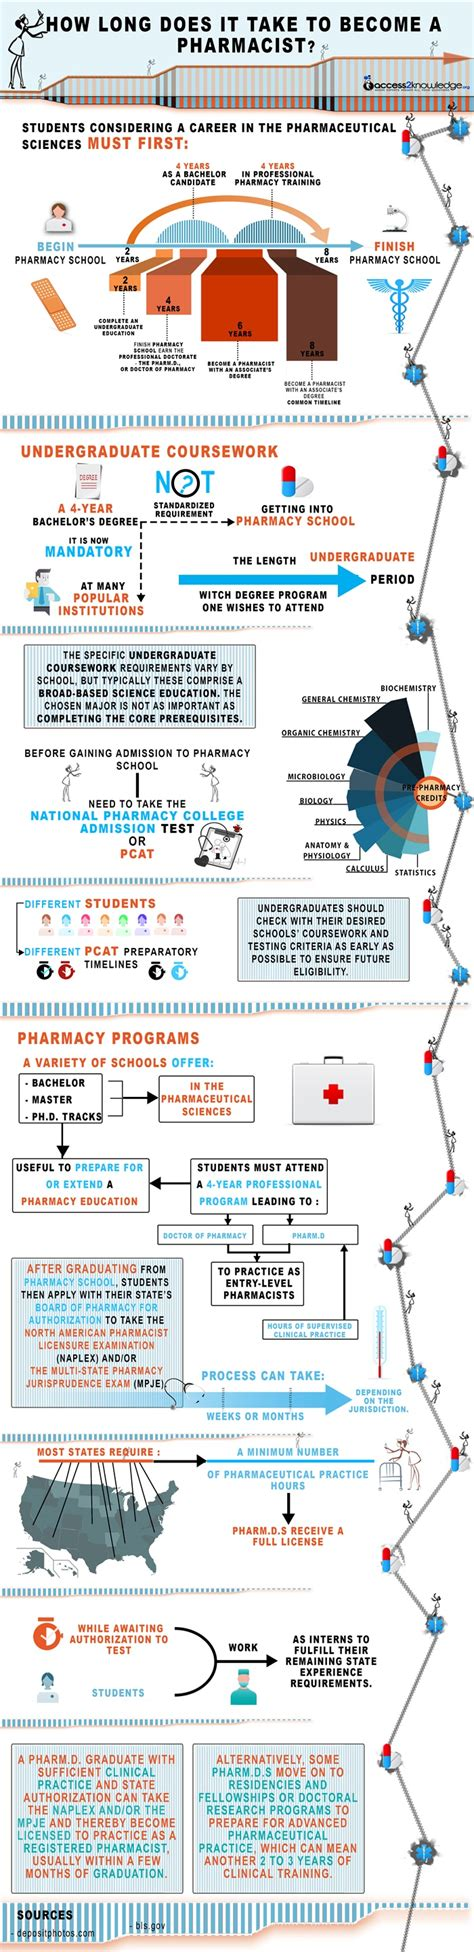 how does it take to become a pharmacist 654 | how long does it take to become a pharmacist2